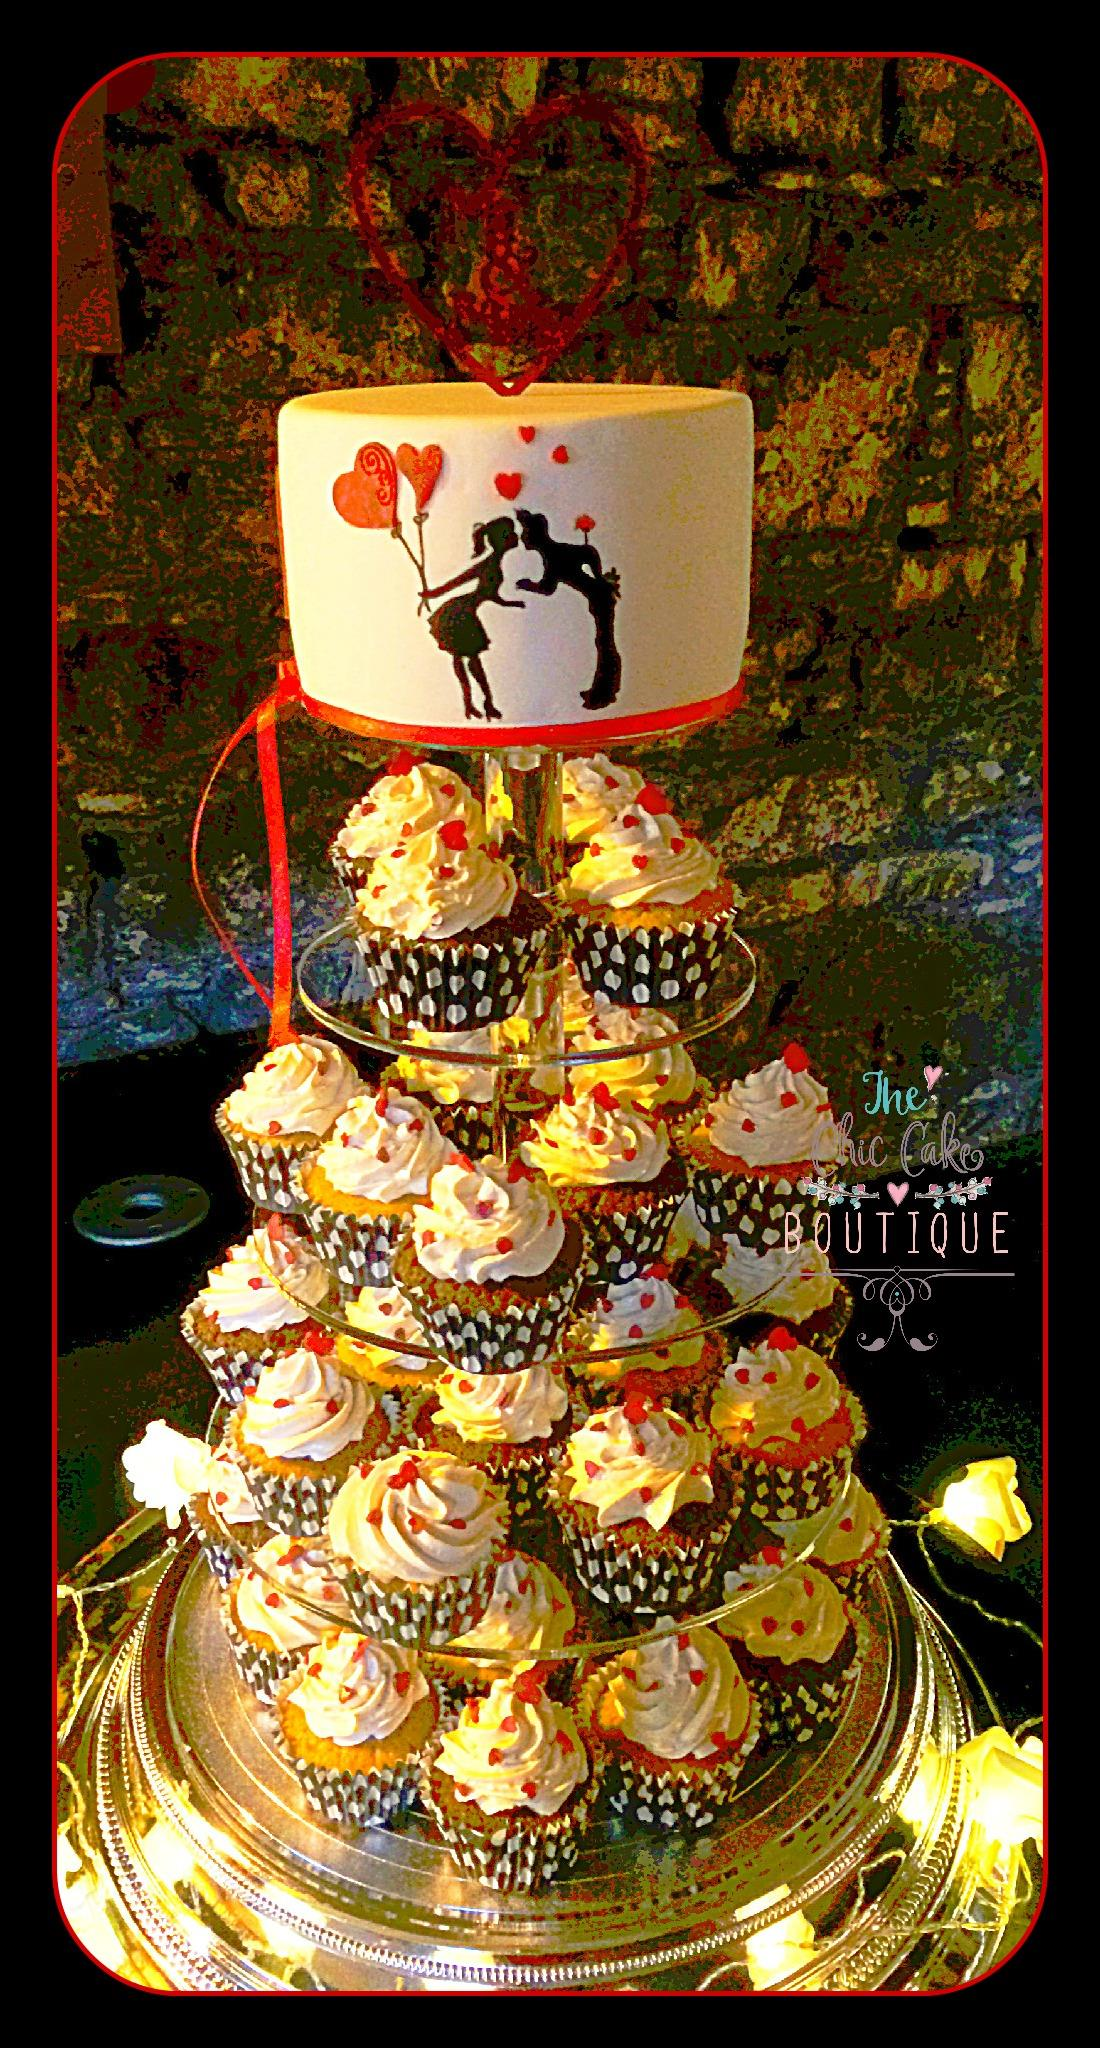 heart-cup-cakes-display